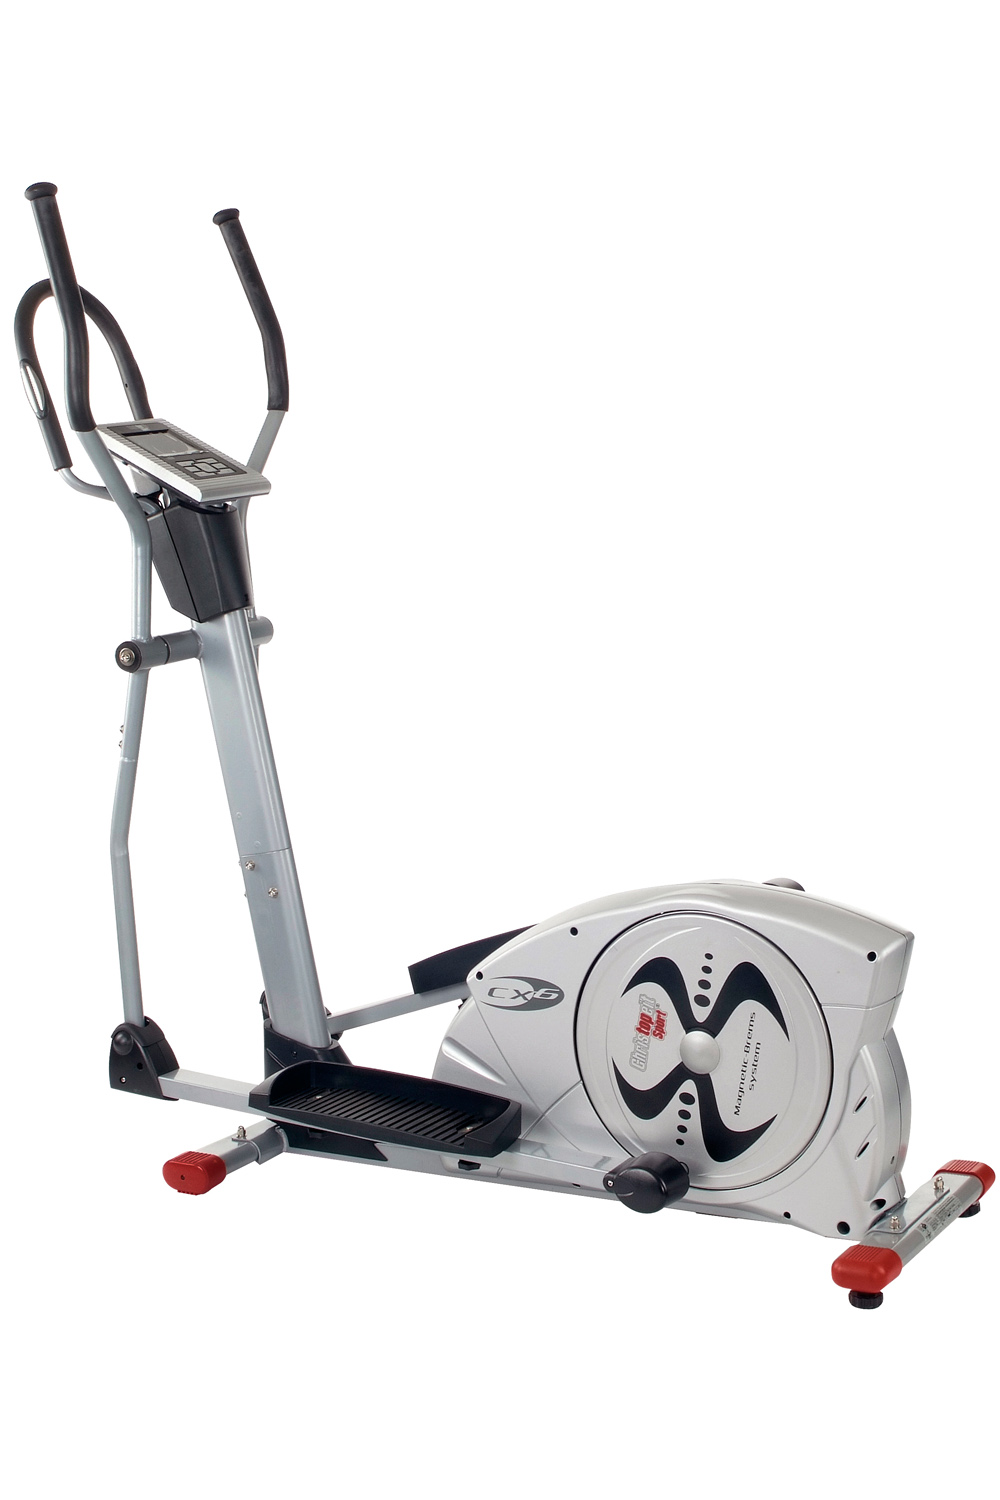 Christopeit CX 6 Crosstrainer